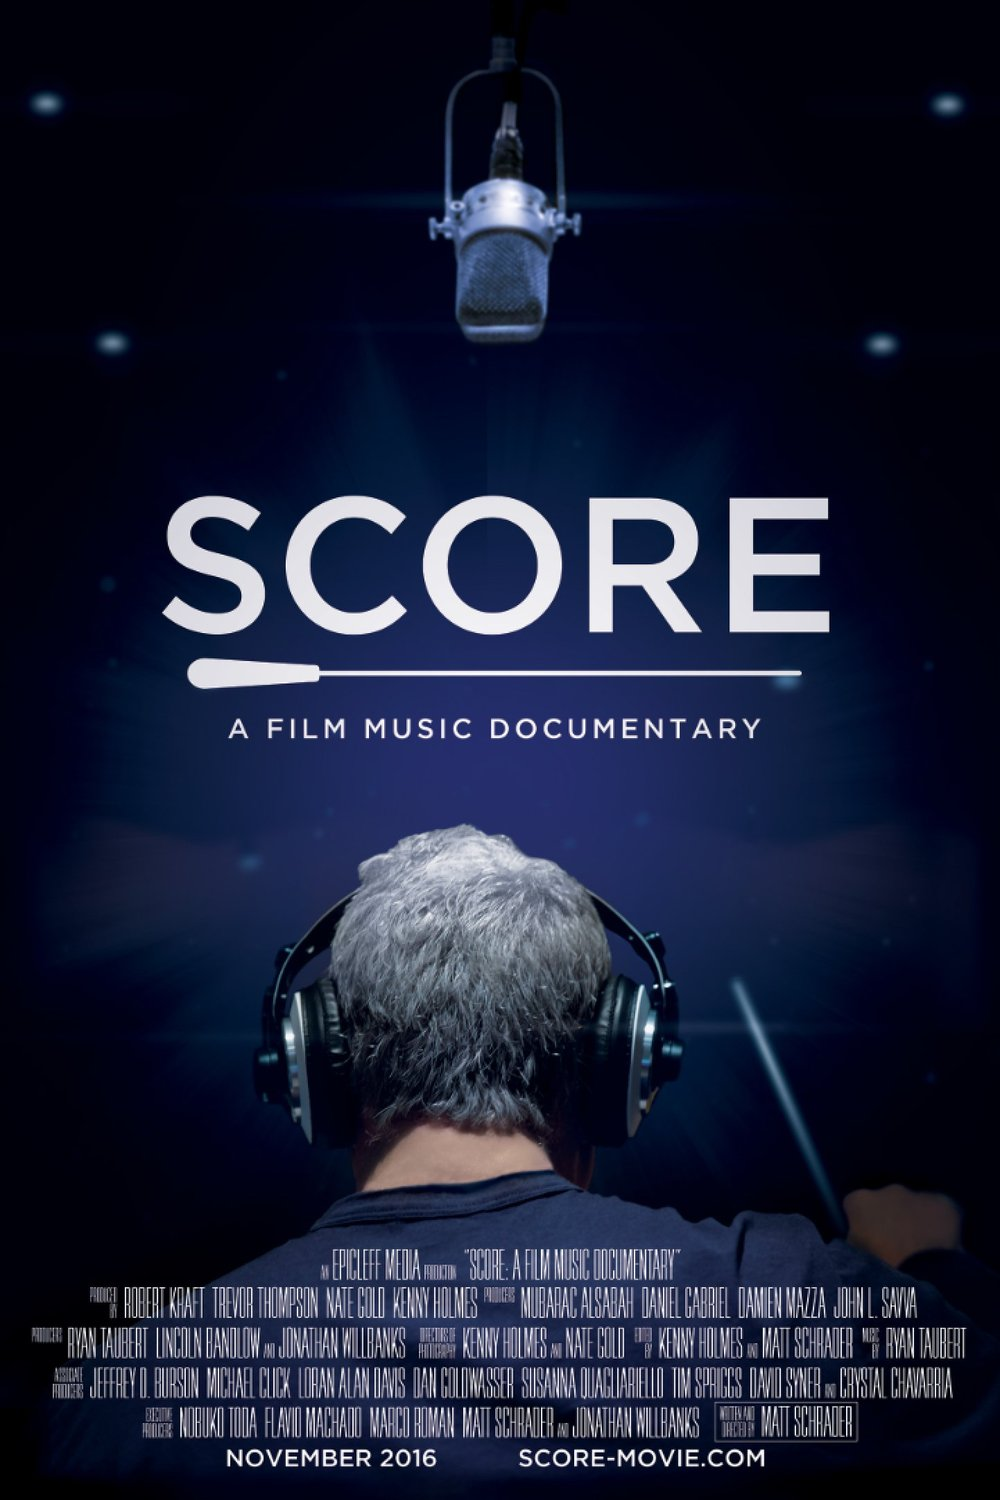 Score – A Film Music Documentary